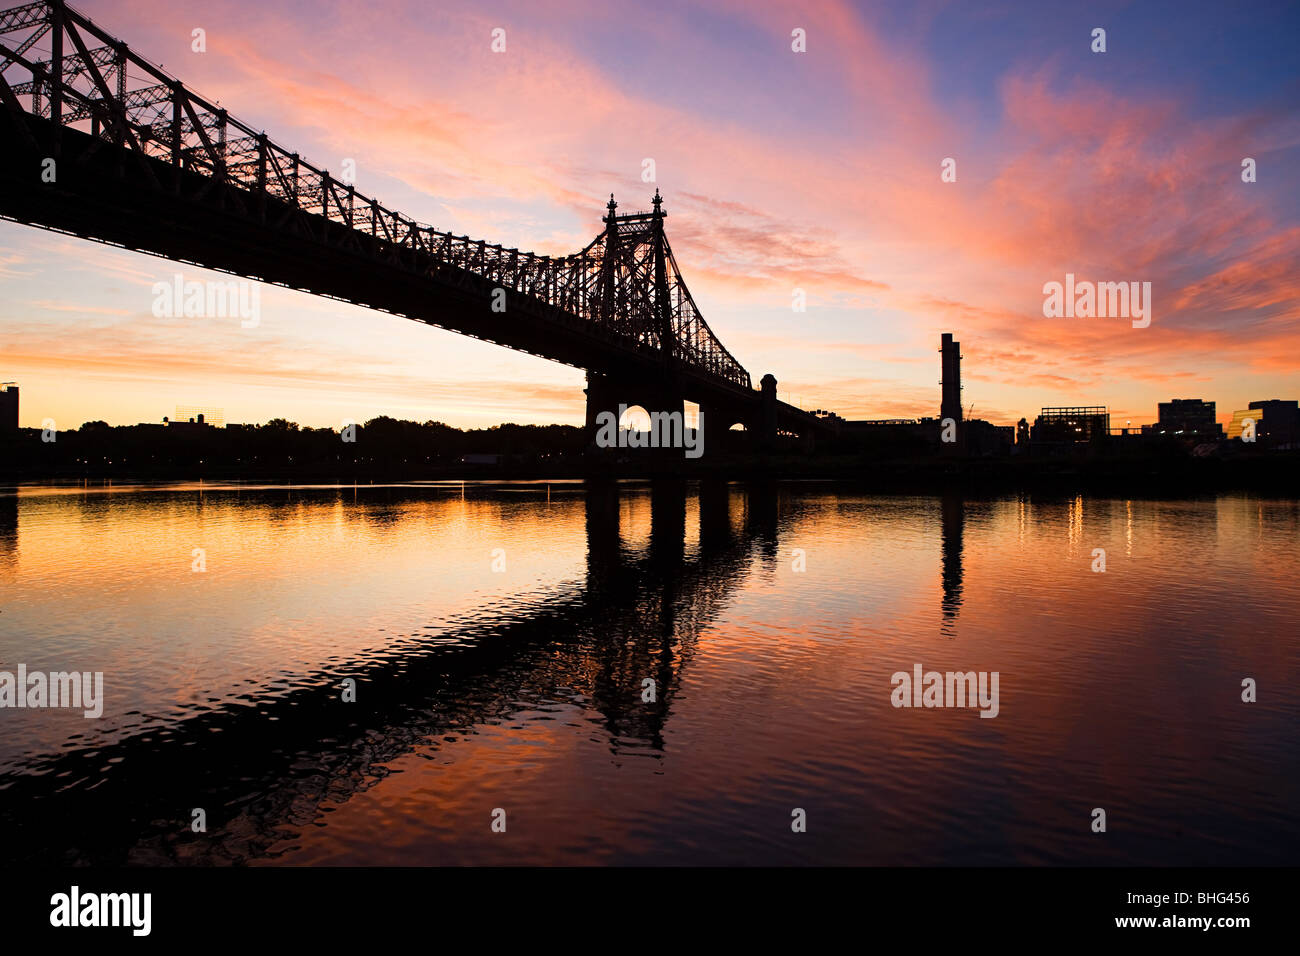 Queensboro bridge new york - Stock Image